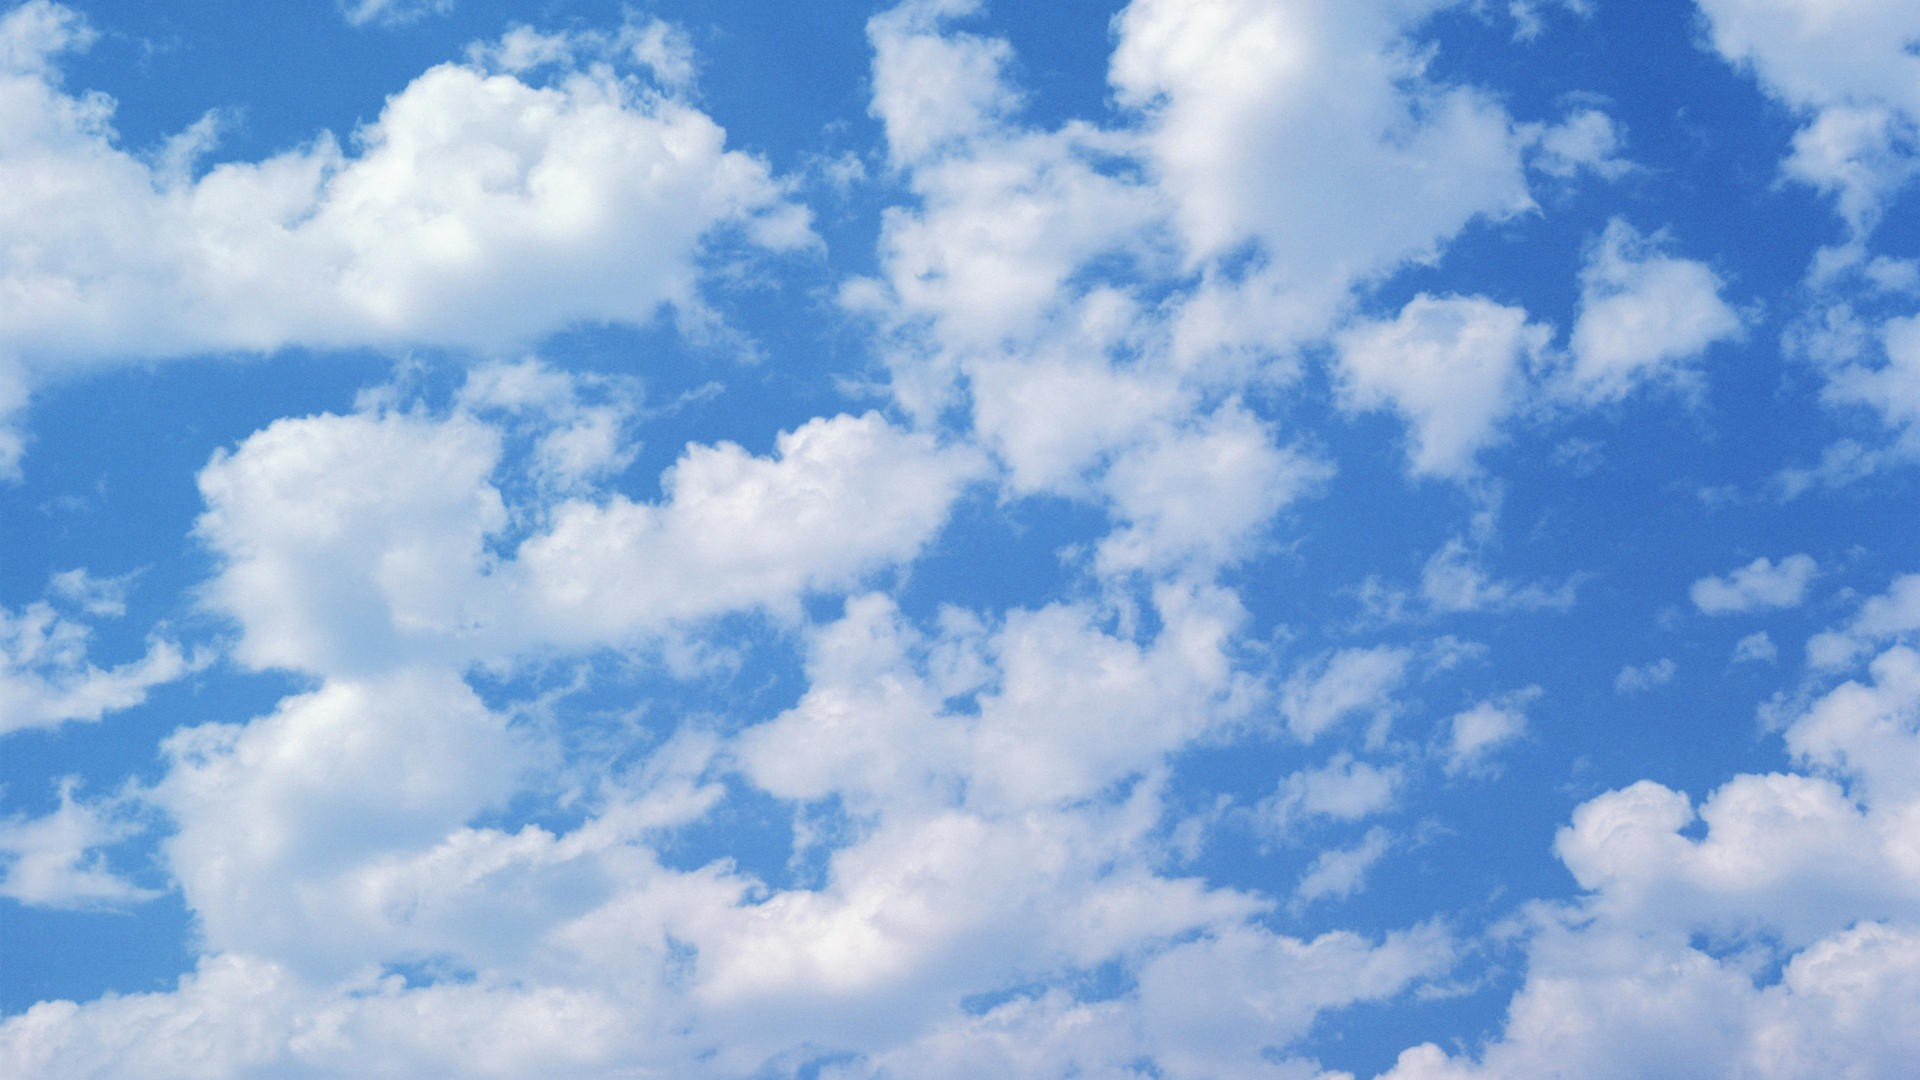 white-clouds-blue-sky-1920x1080